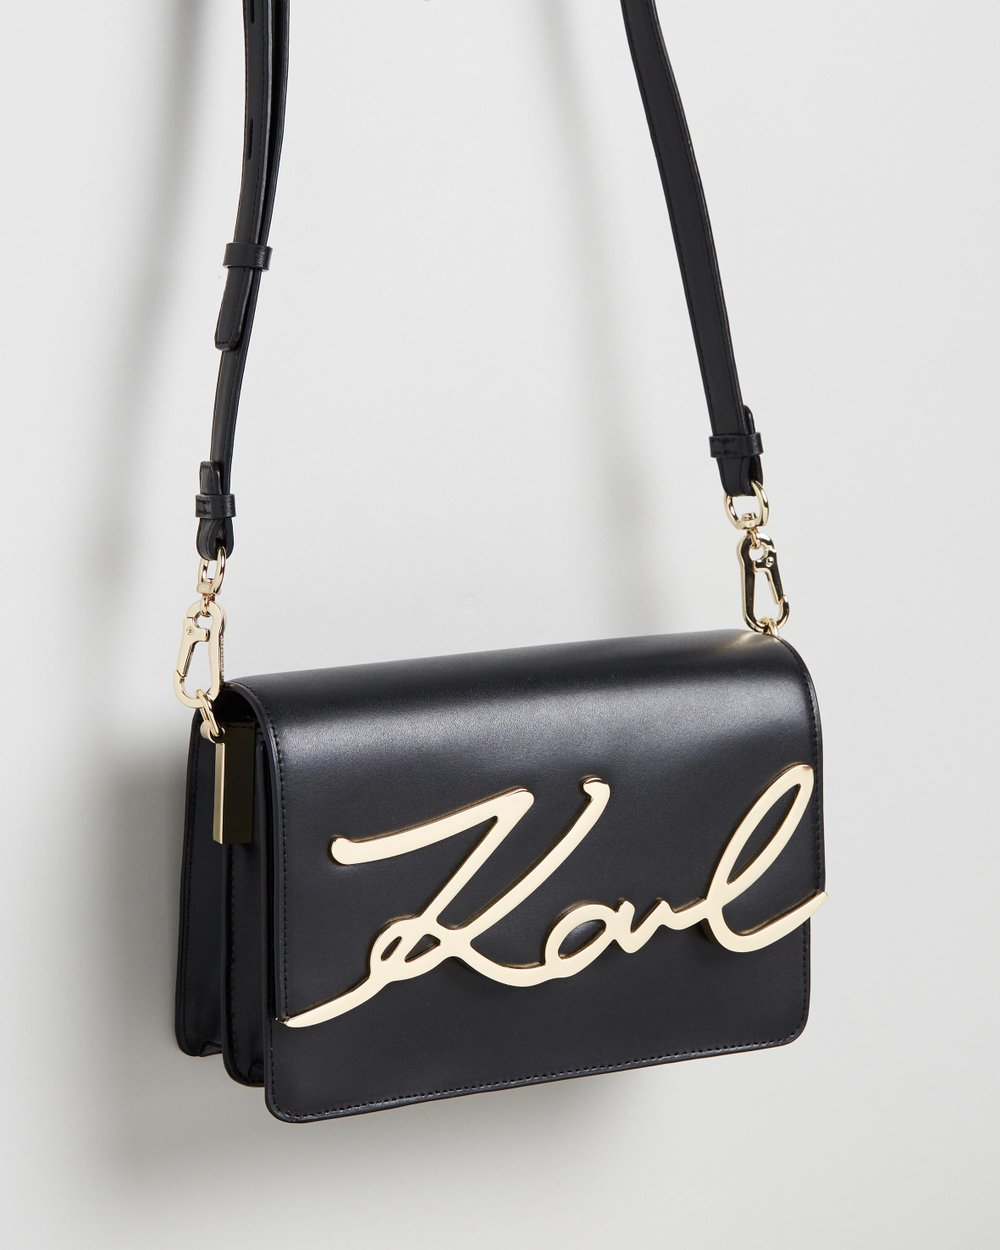 55a9fac005af K Signature Shoulder Bag by Karl Lagerfeld Online